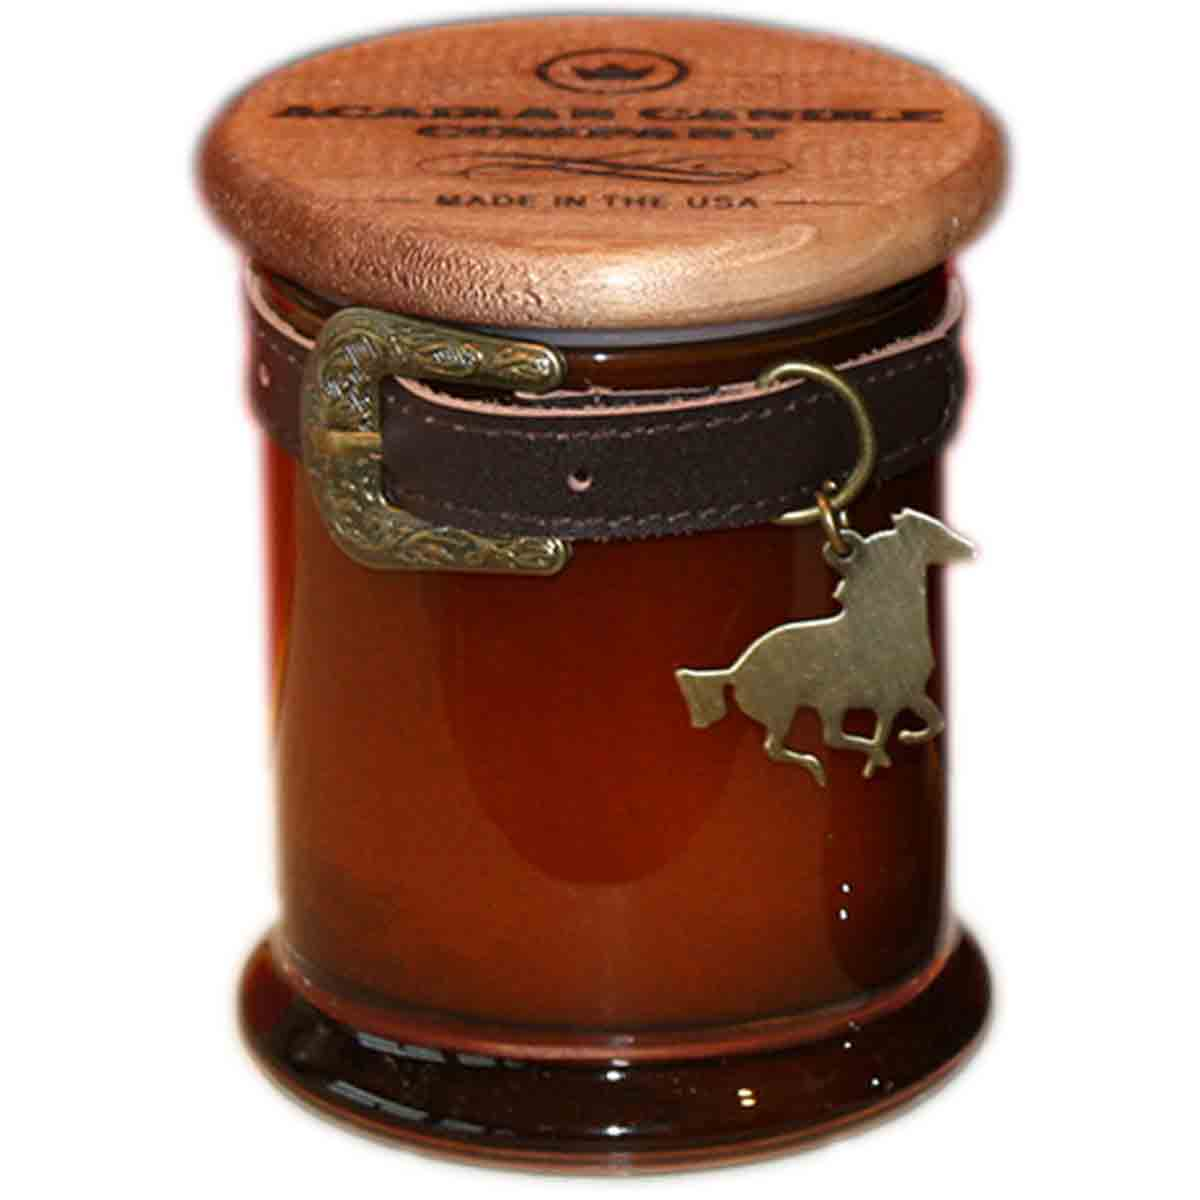 Stallion Belt Candle - Leather Tobacco Scent